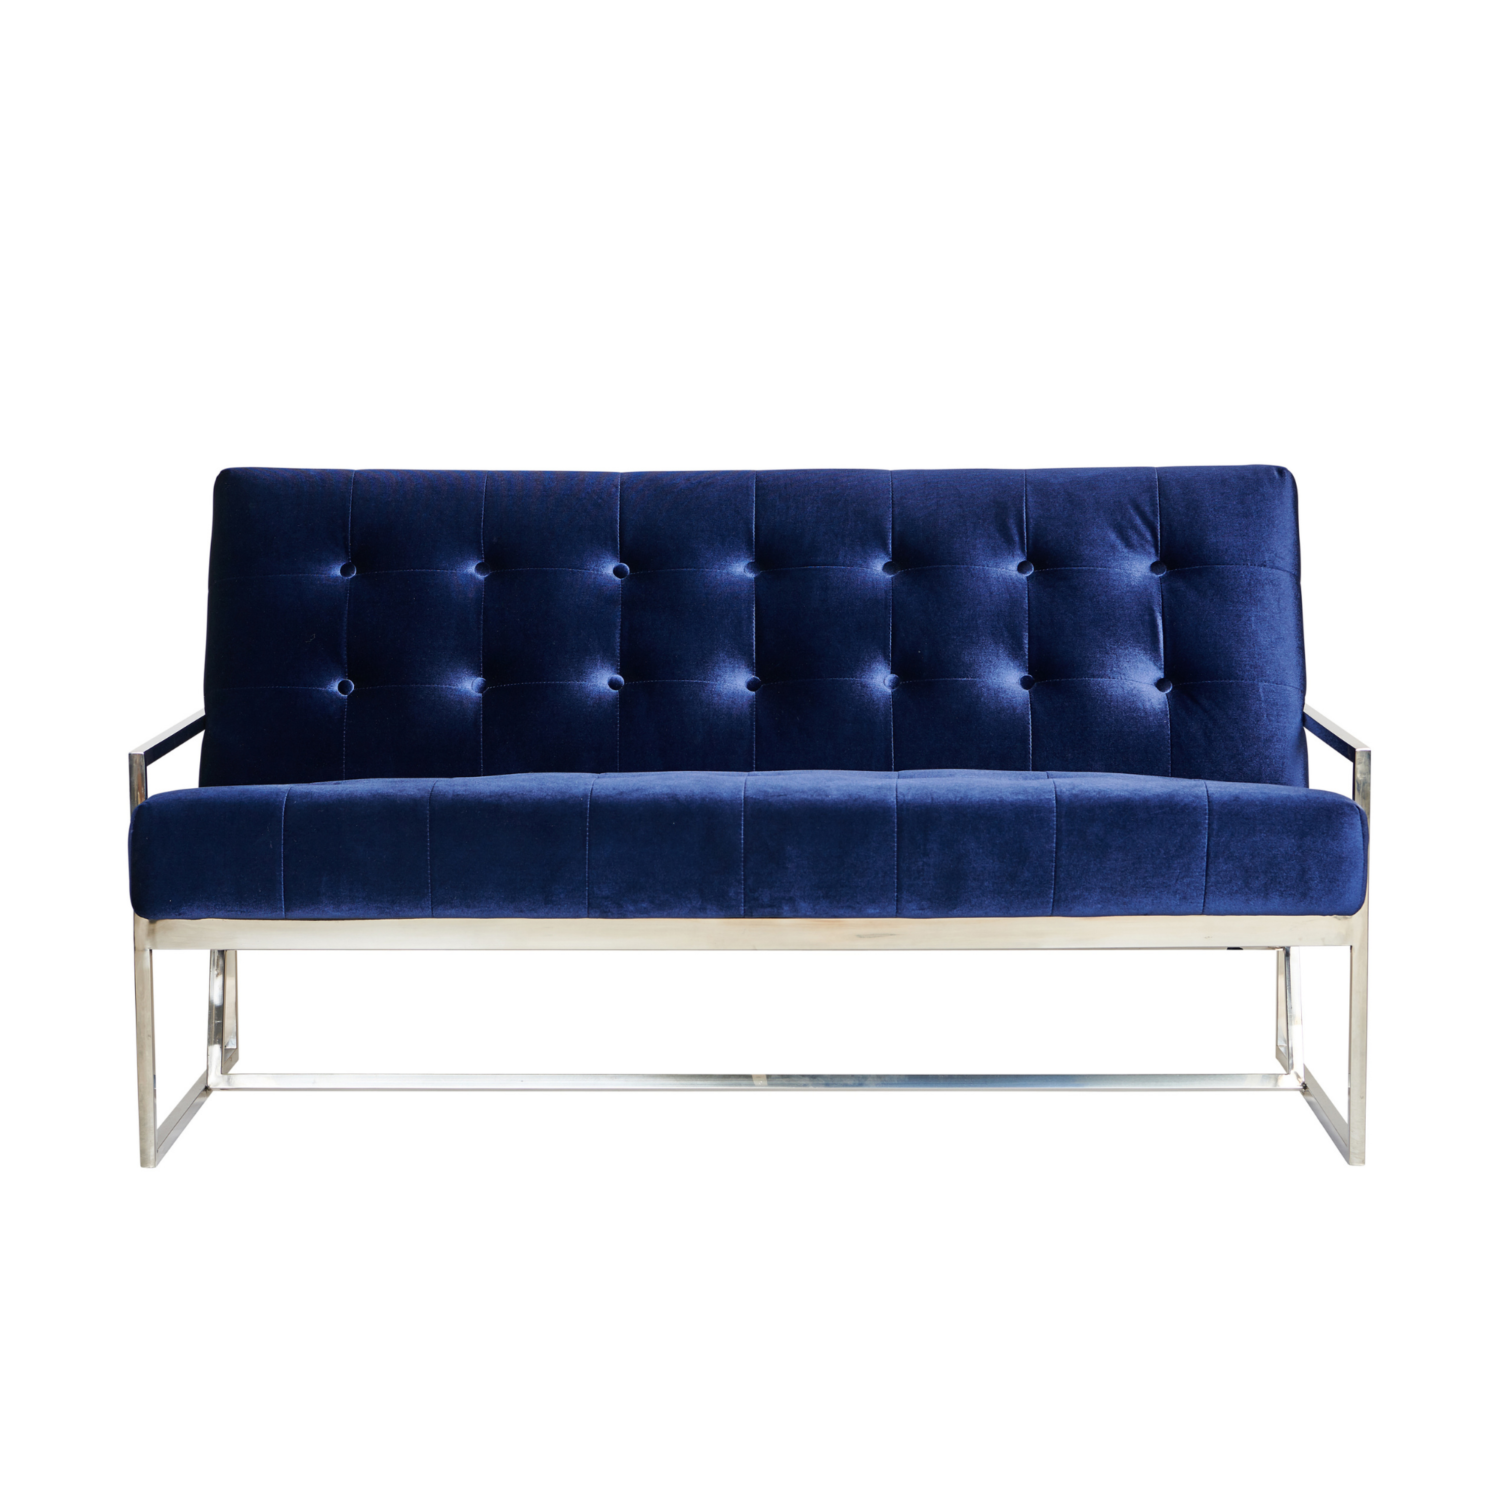 Starlet Two Seater Sofa - Navy / Silver Frame - Event Artillery